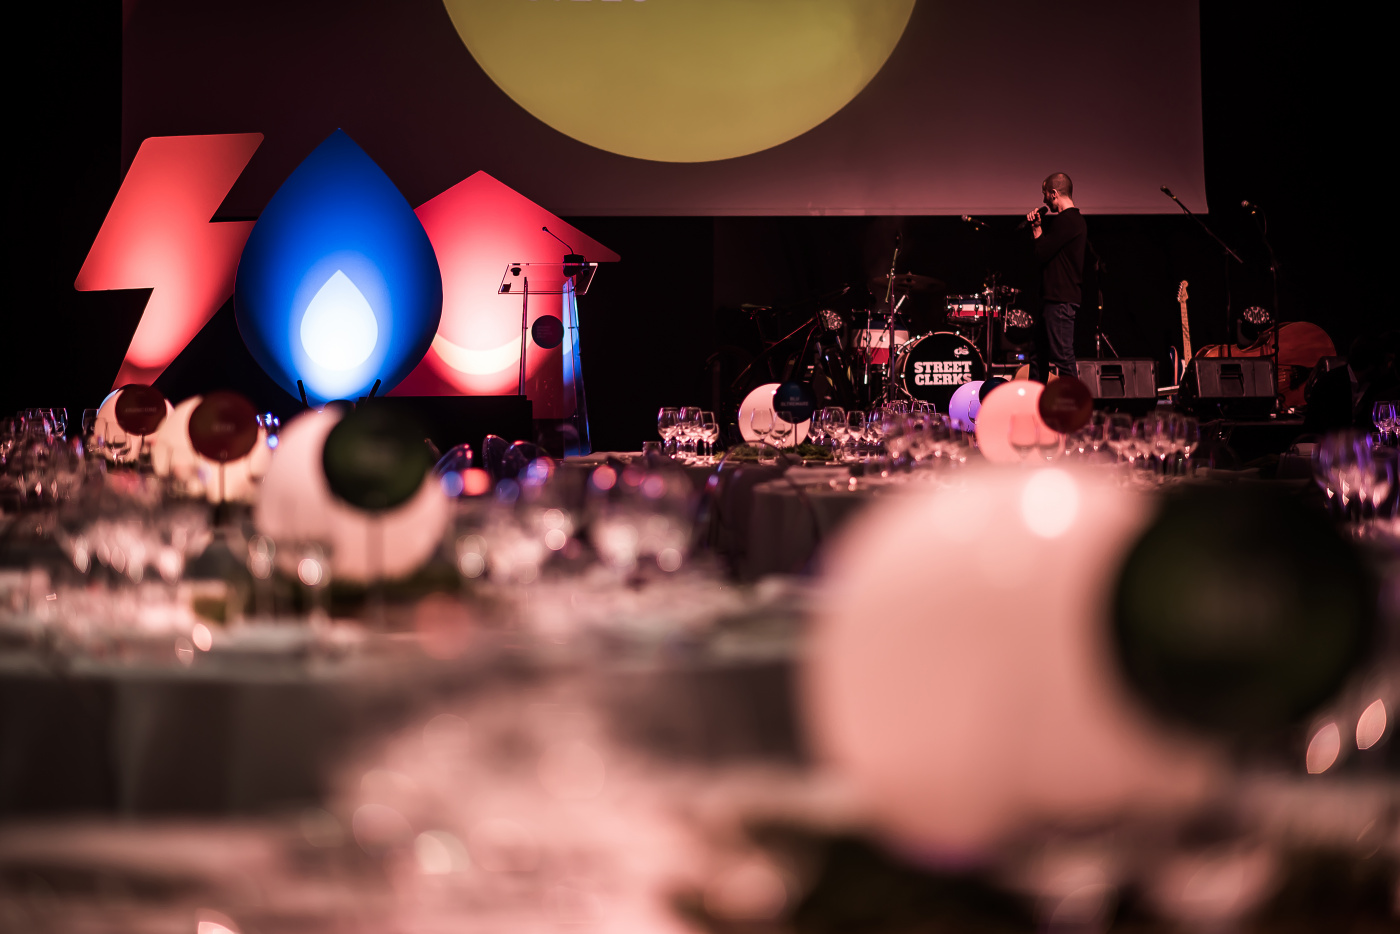 Corporate event in rome creative design with round colored spheres